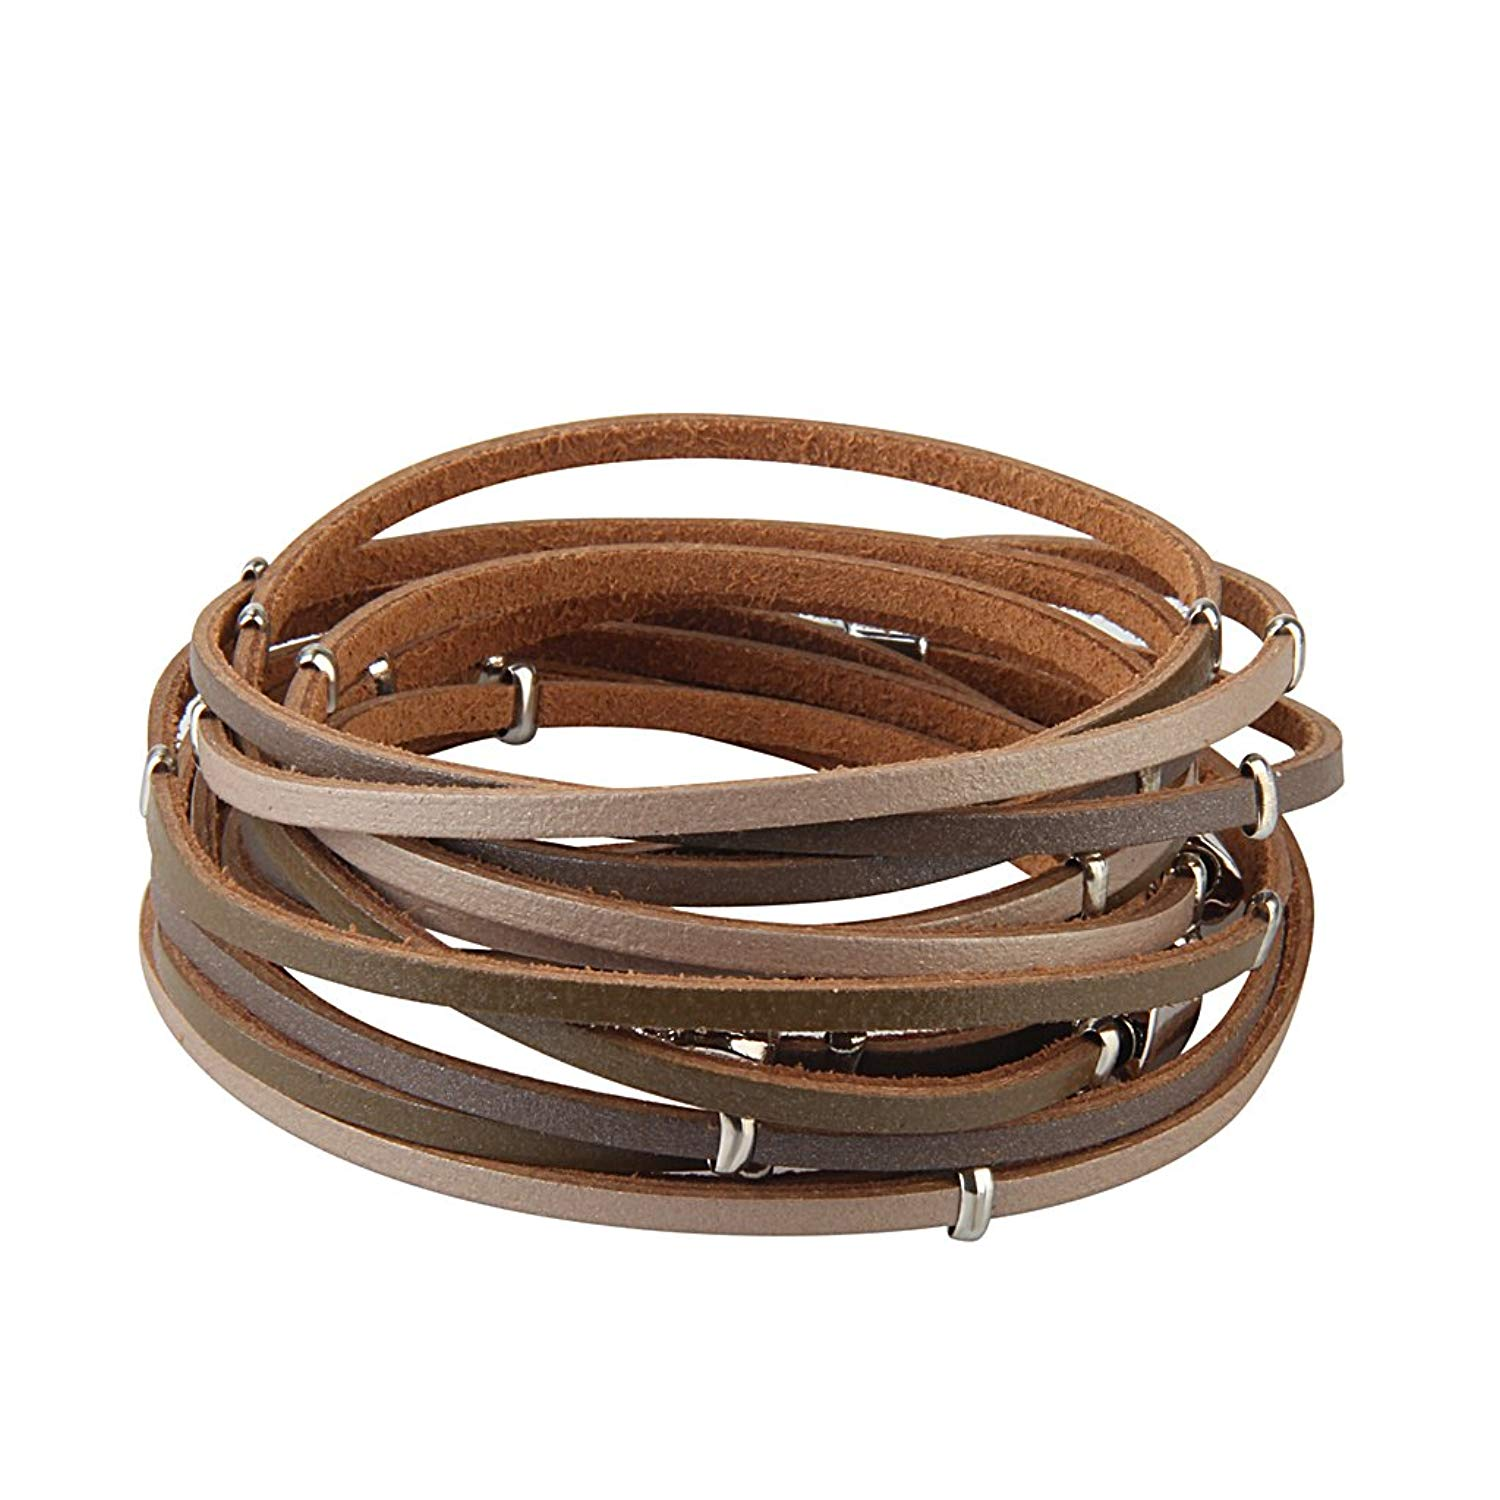 JAOYU Leather Bracelet Women Bead Bracelets for Girls Multilayer Rope Braided Bangle - Handmade Jewelry Gifts